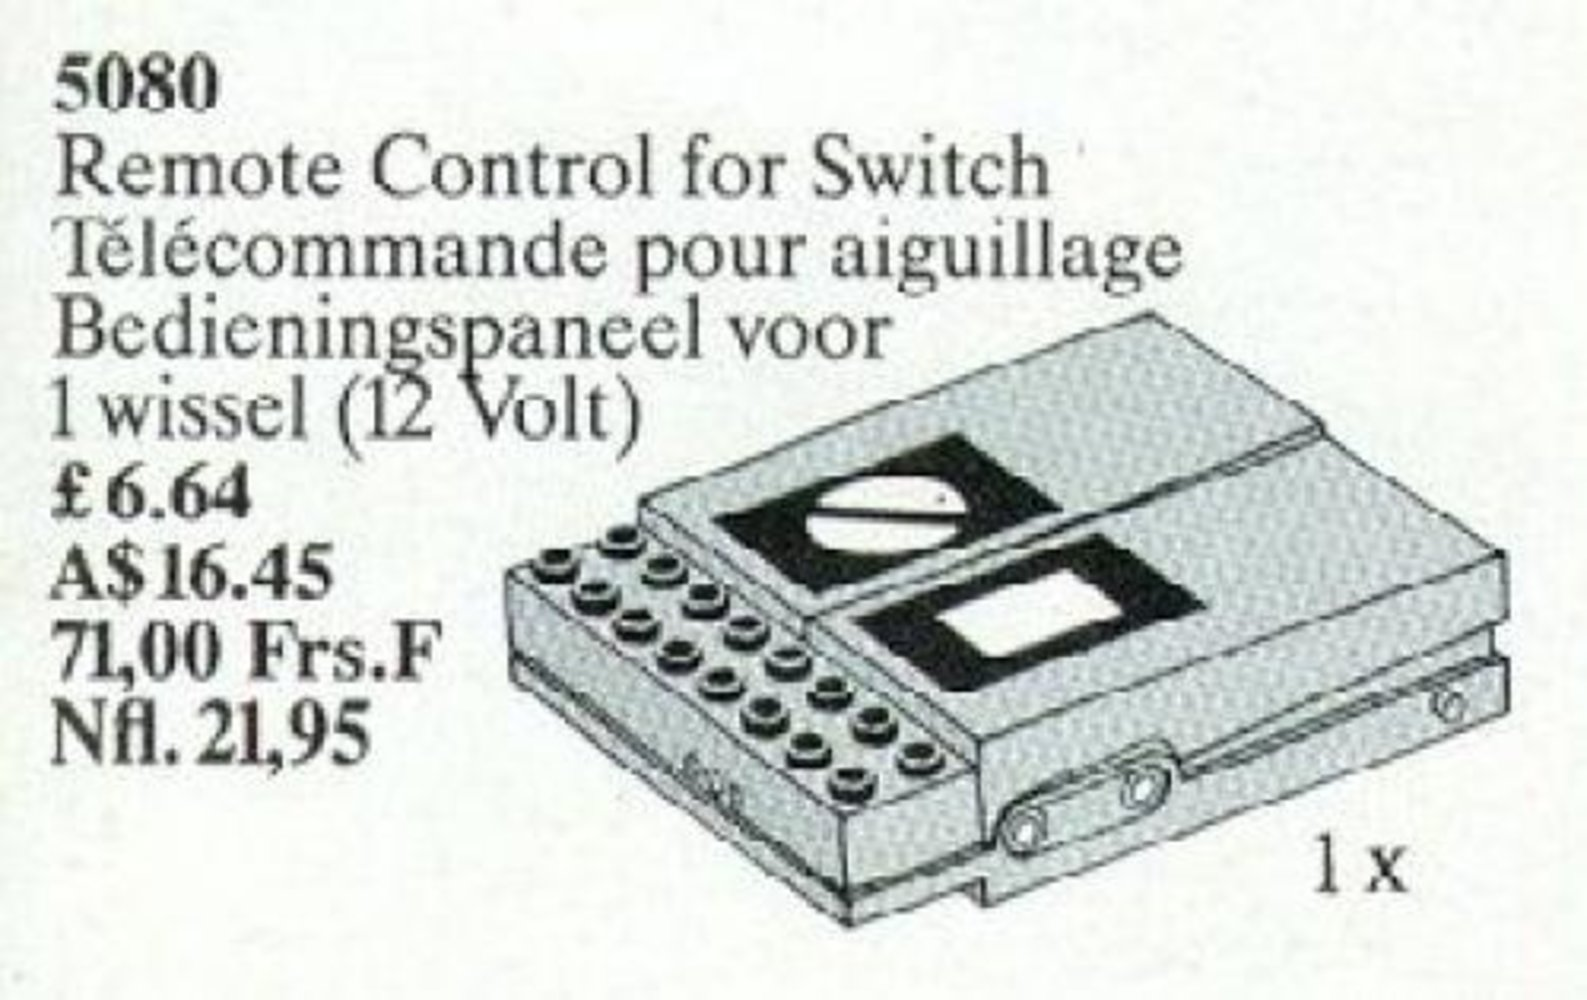 Remote Control for Switch